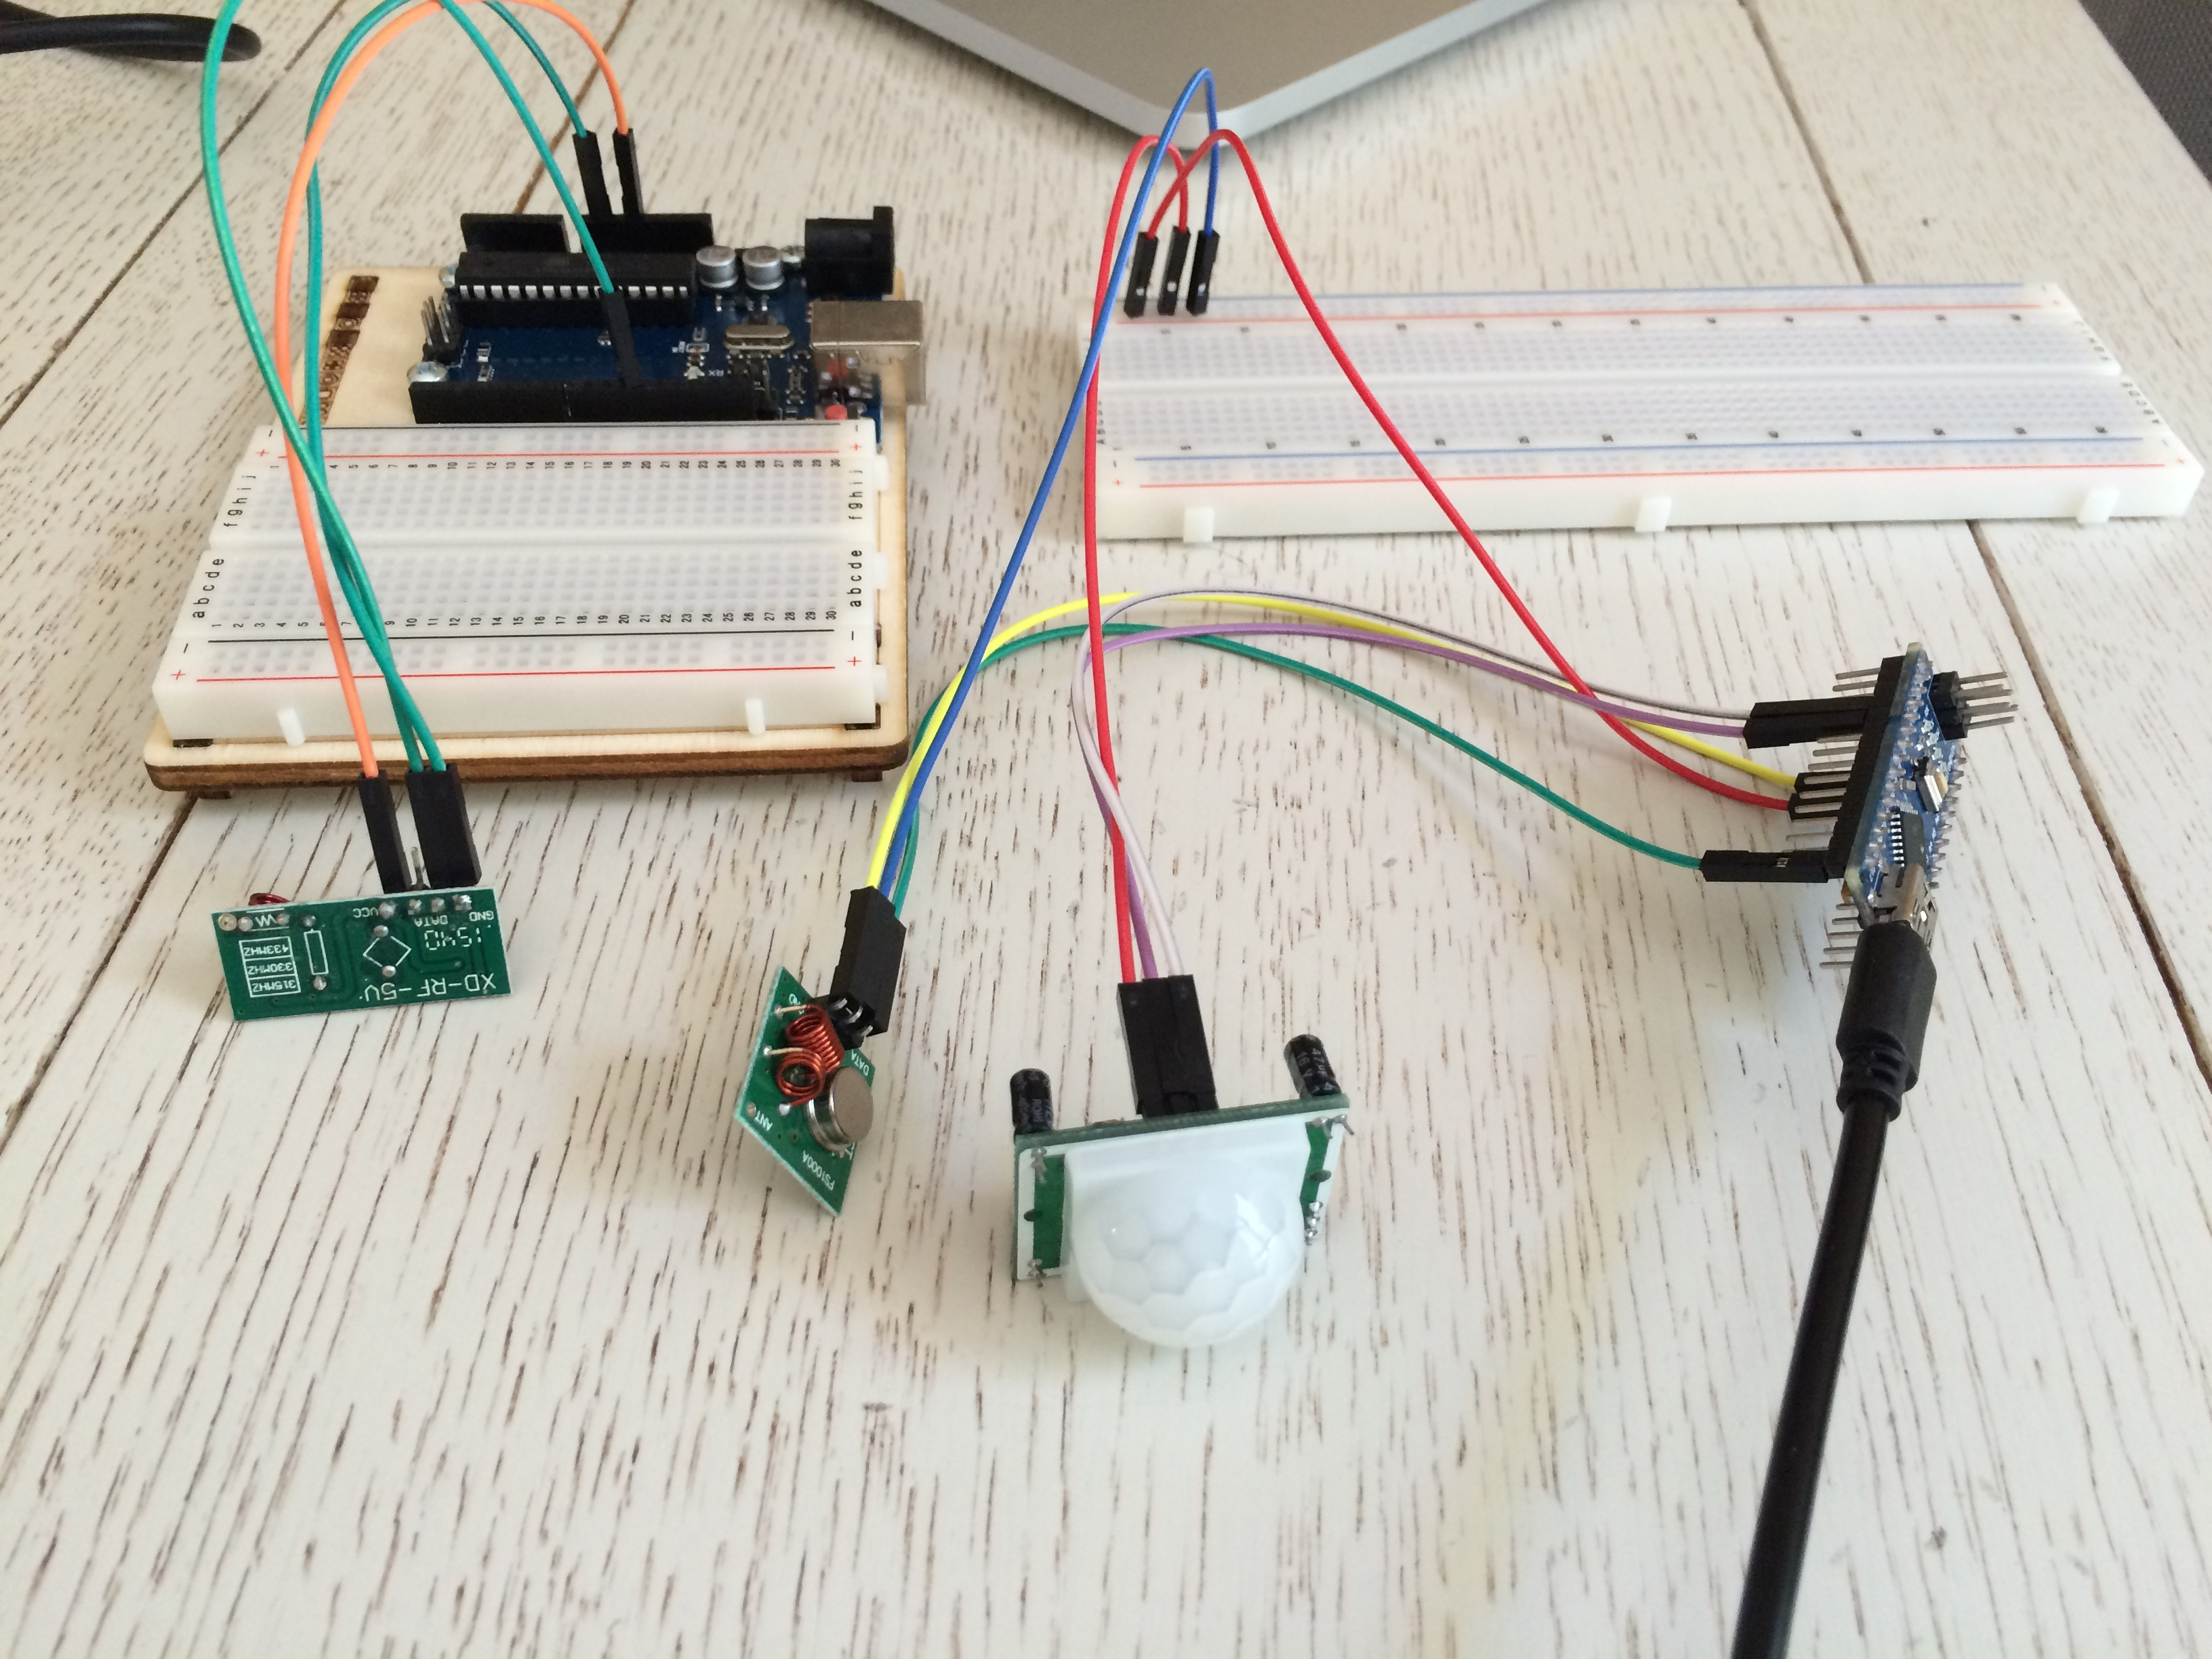 Alarm with PIR sensor and RF module to declare an intrusion